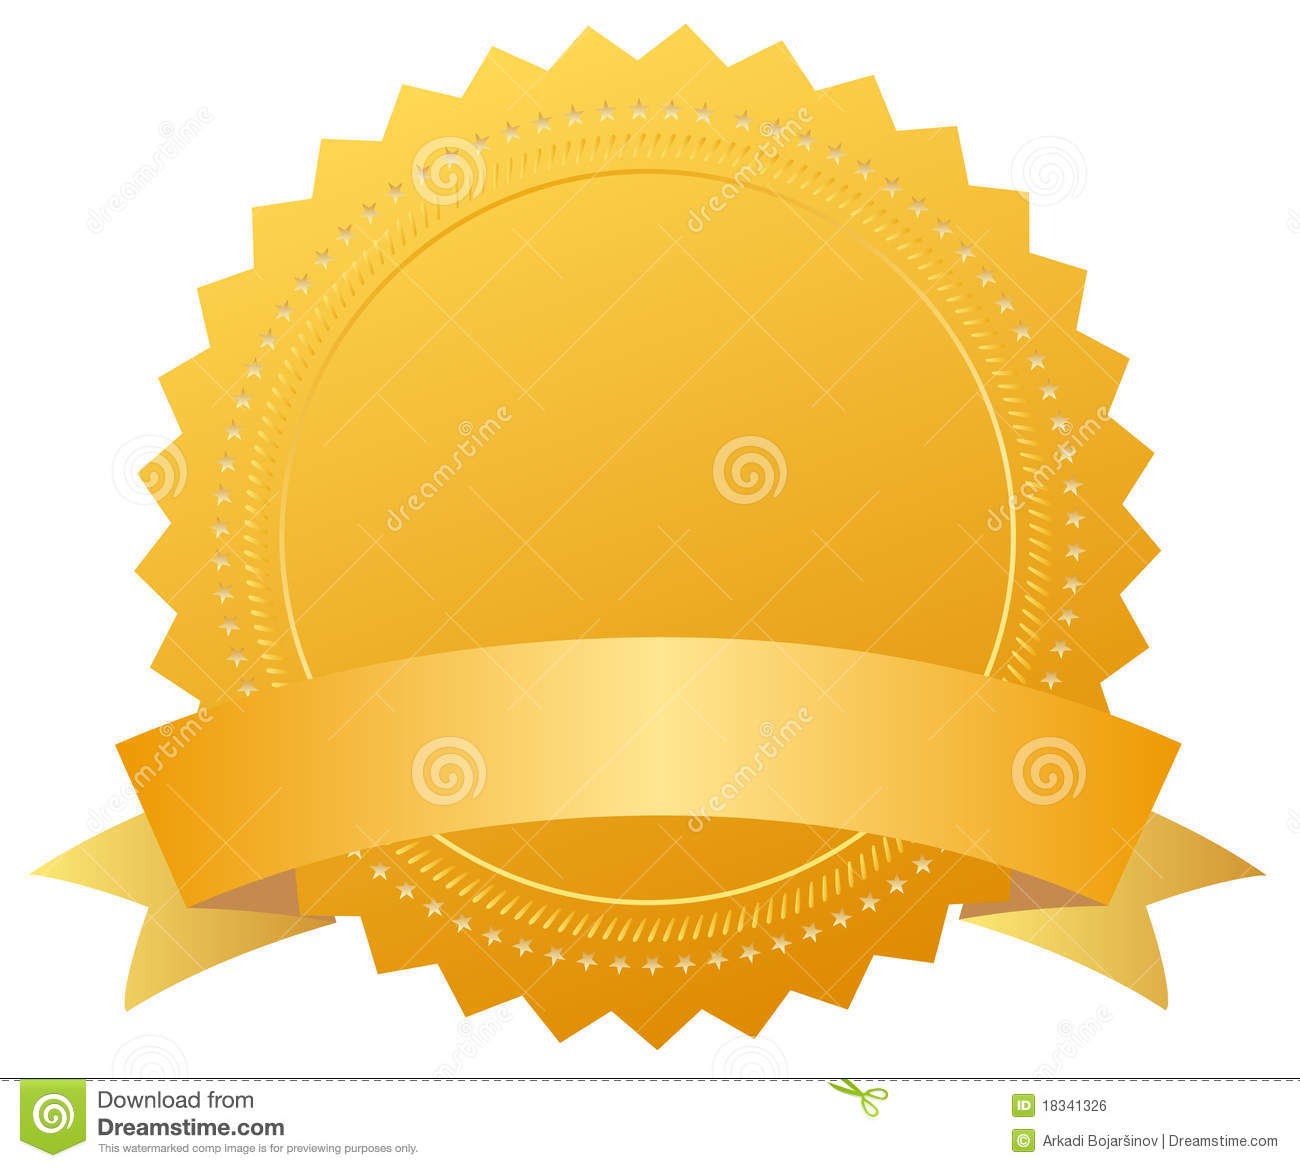 Blank Award Golden Medal Royalty Free Stock Image   Image  18341326